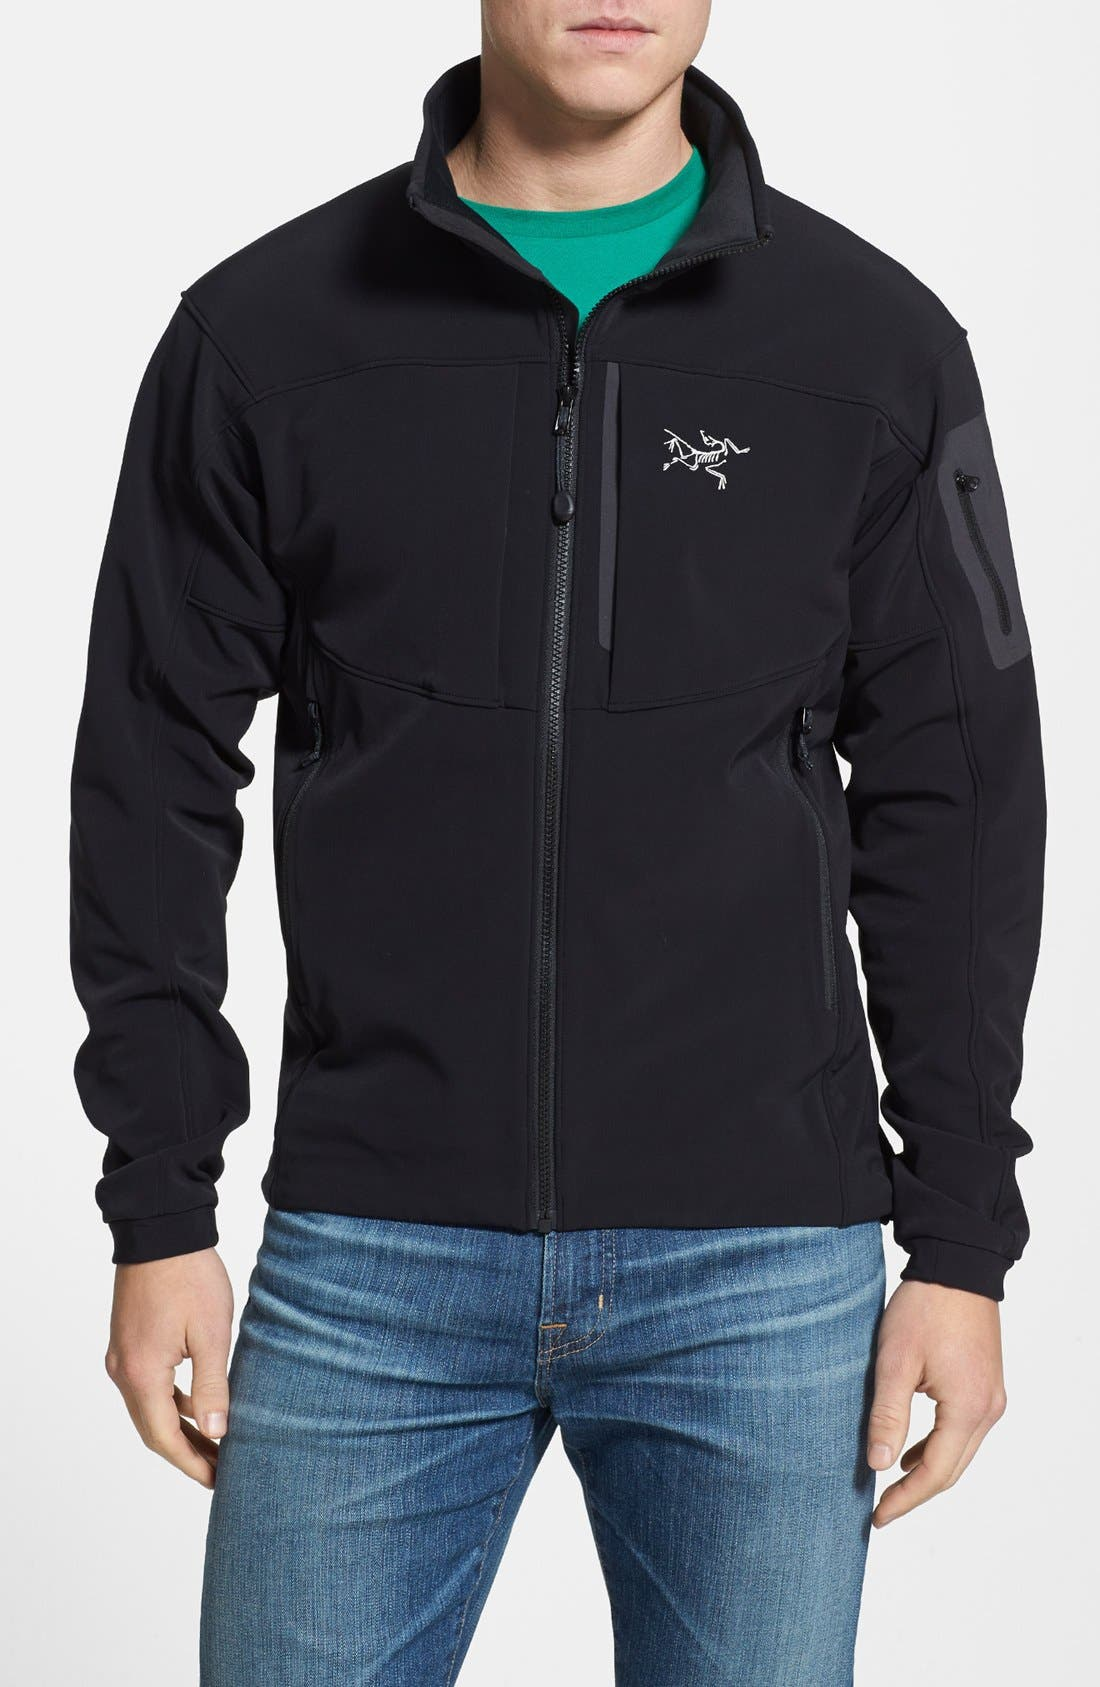 Main Image - Arc'teryx 'Gamma MX' Athletic Fit Soft Shell Jacket